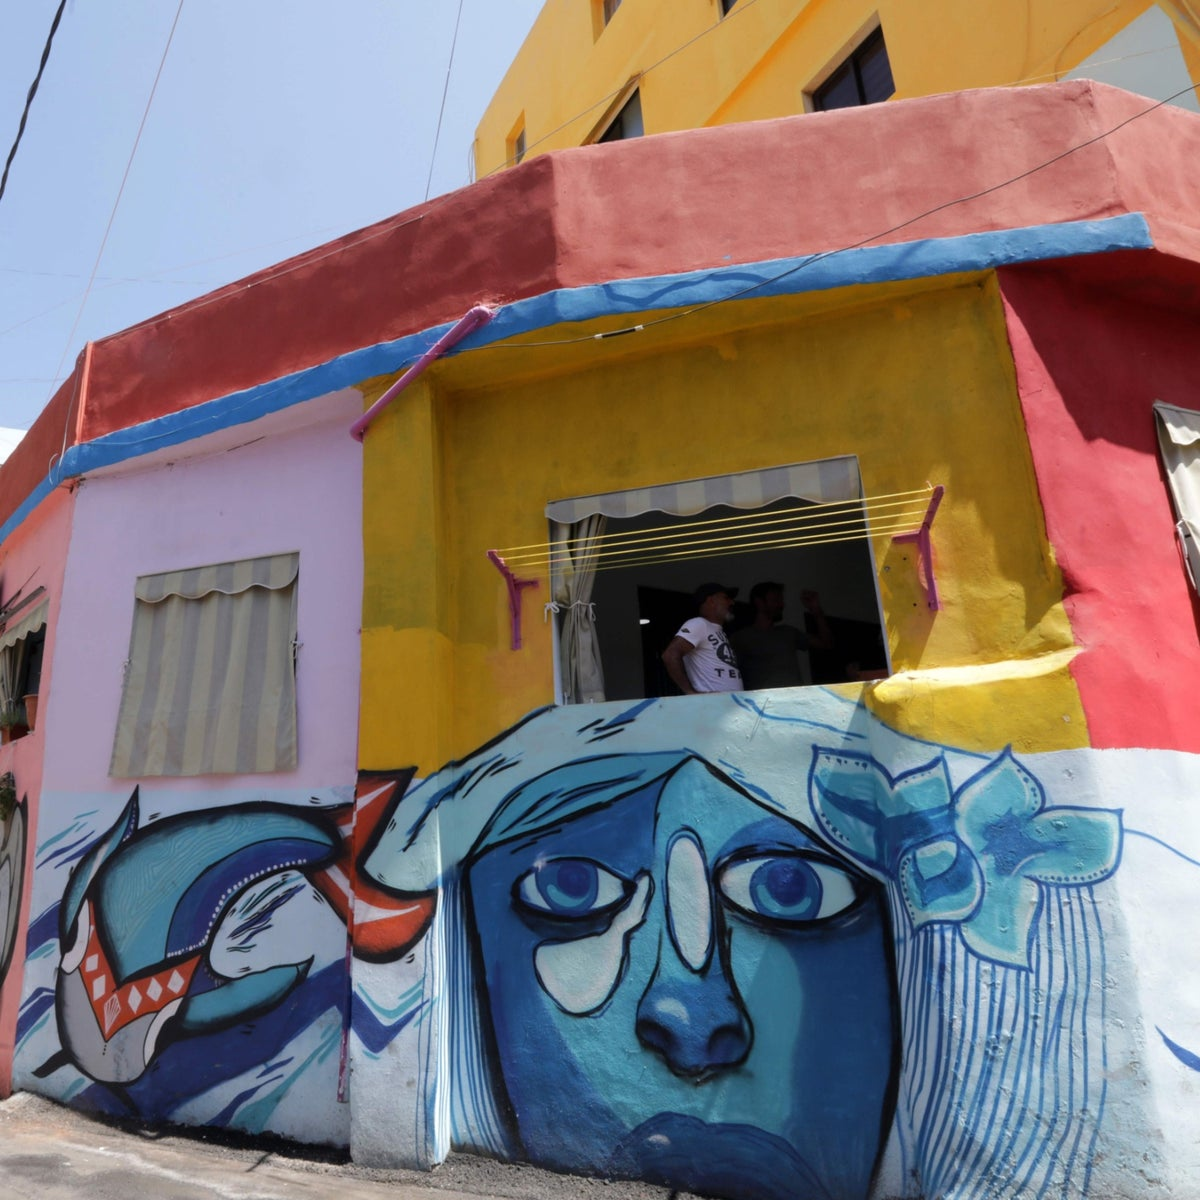 Painted houses in Beirut's southern Ouzai neighborhood as part of Ayad Nasser's project, in August 2017.